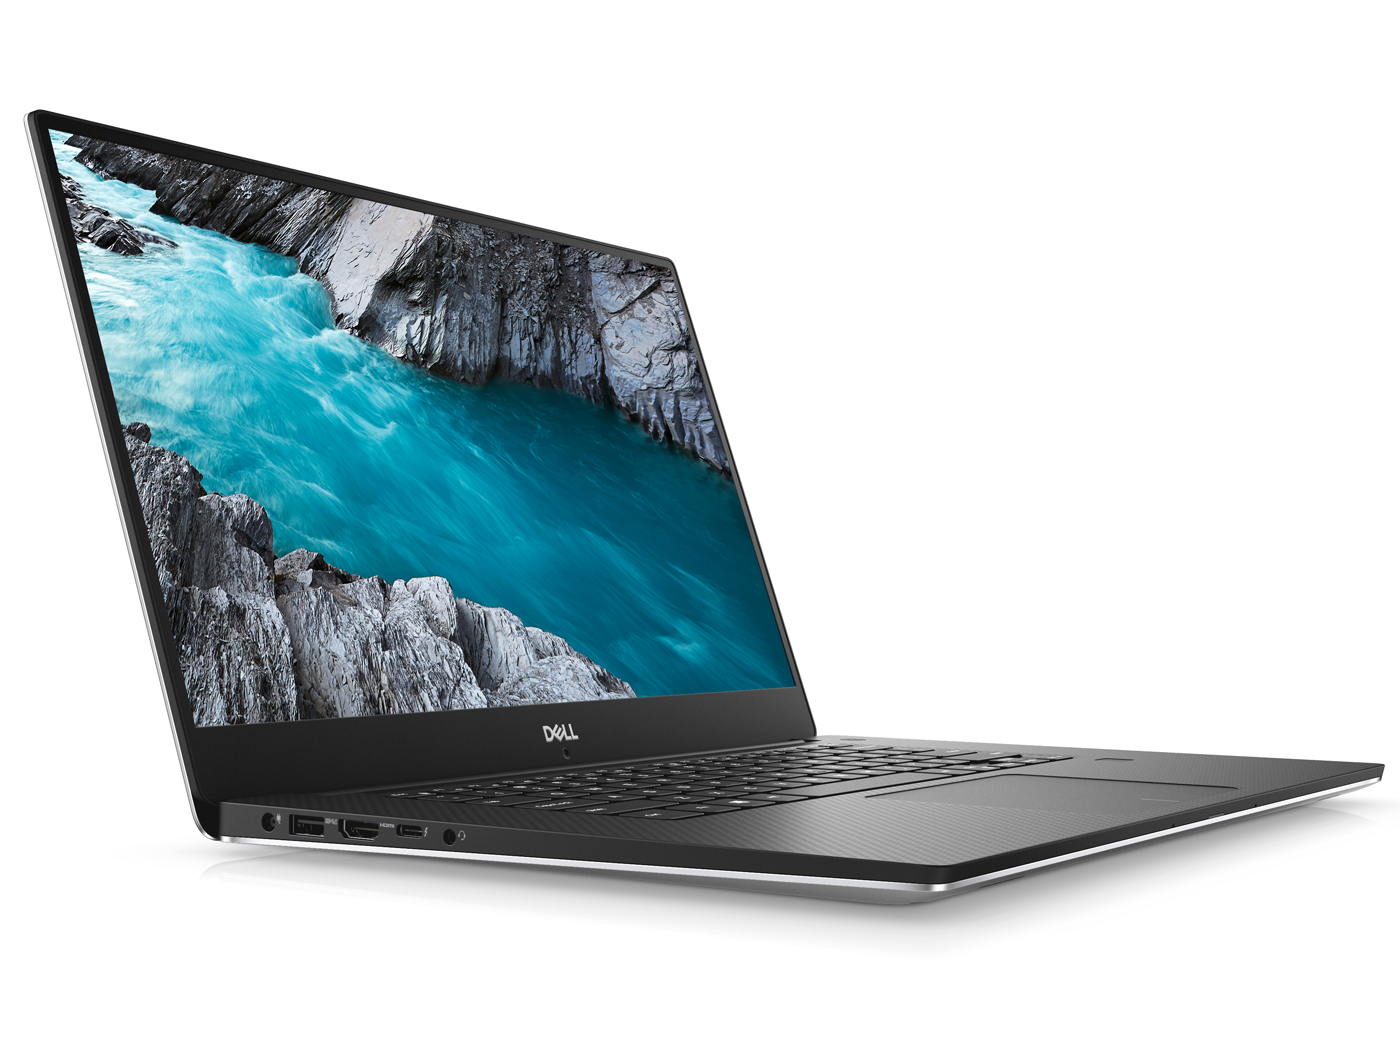 Dell XPS 15 2018 i5 FHD 97Wh - Notebookcheck.net External Reviews